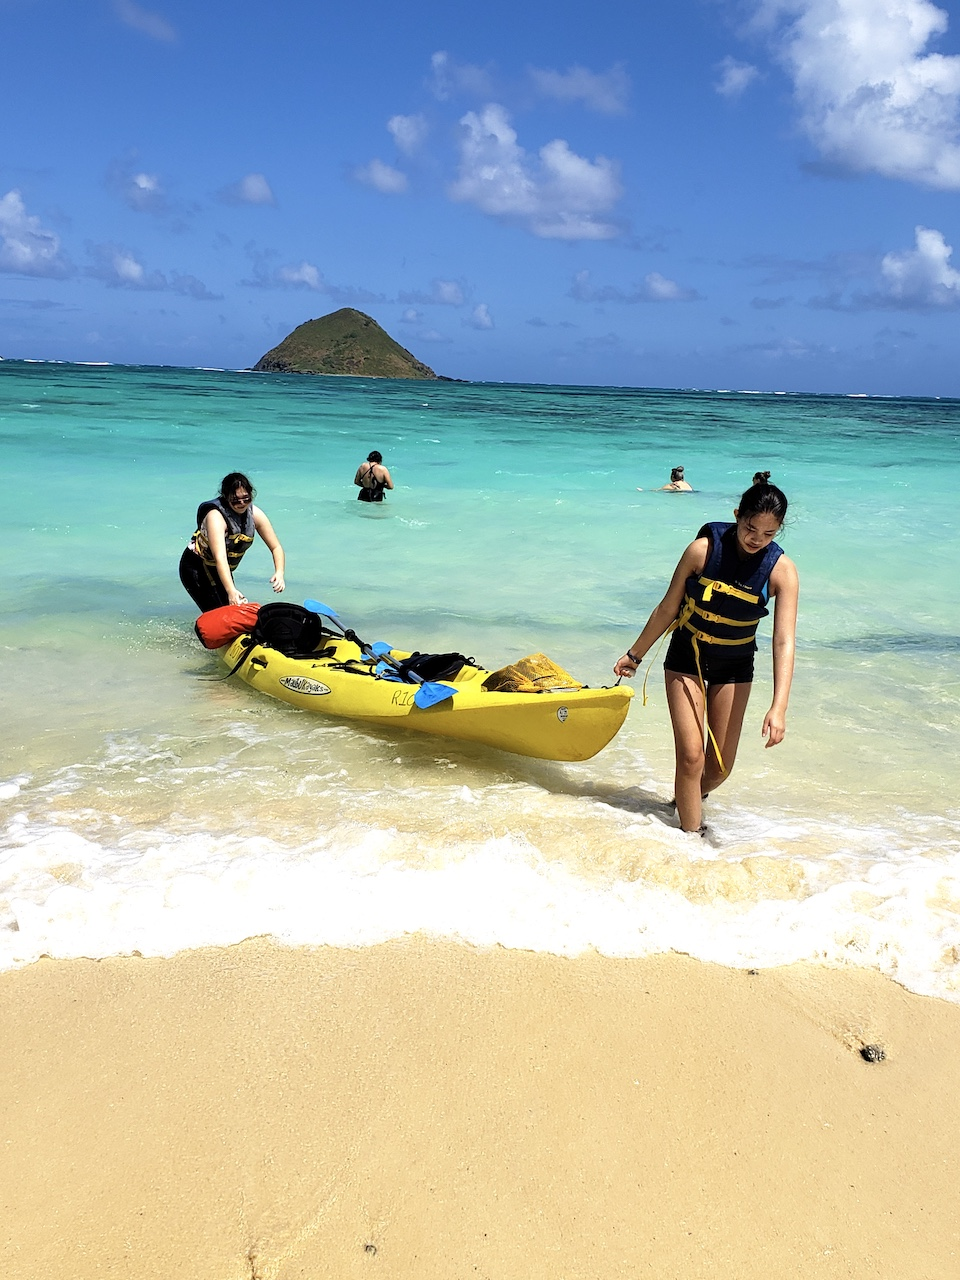 Mia & Aly returning from the kayaking trip